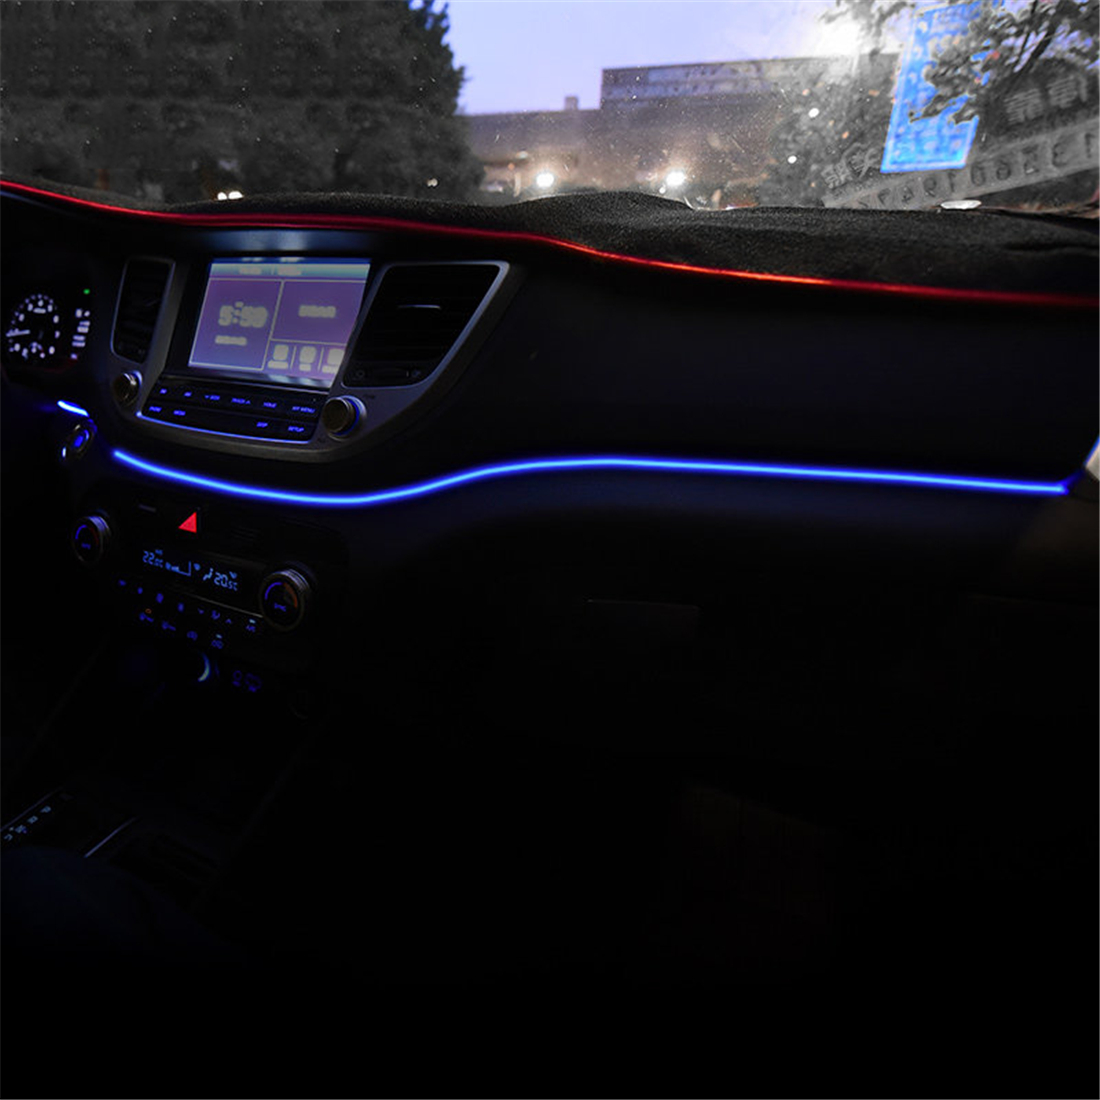 Image 4 - Instrument Panel Trim Atmosphere Light For Hyundai Tucson 2015 2016 Interior LED Blue Dashboard Frame Light For Tucson 2017 2018-in Interior Mouldings from Automobiles & Motorcycles